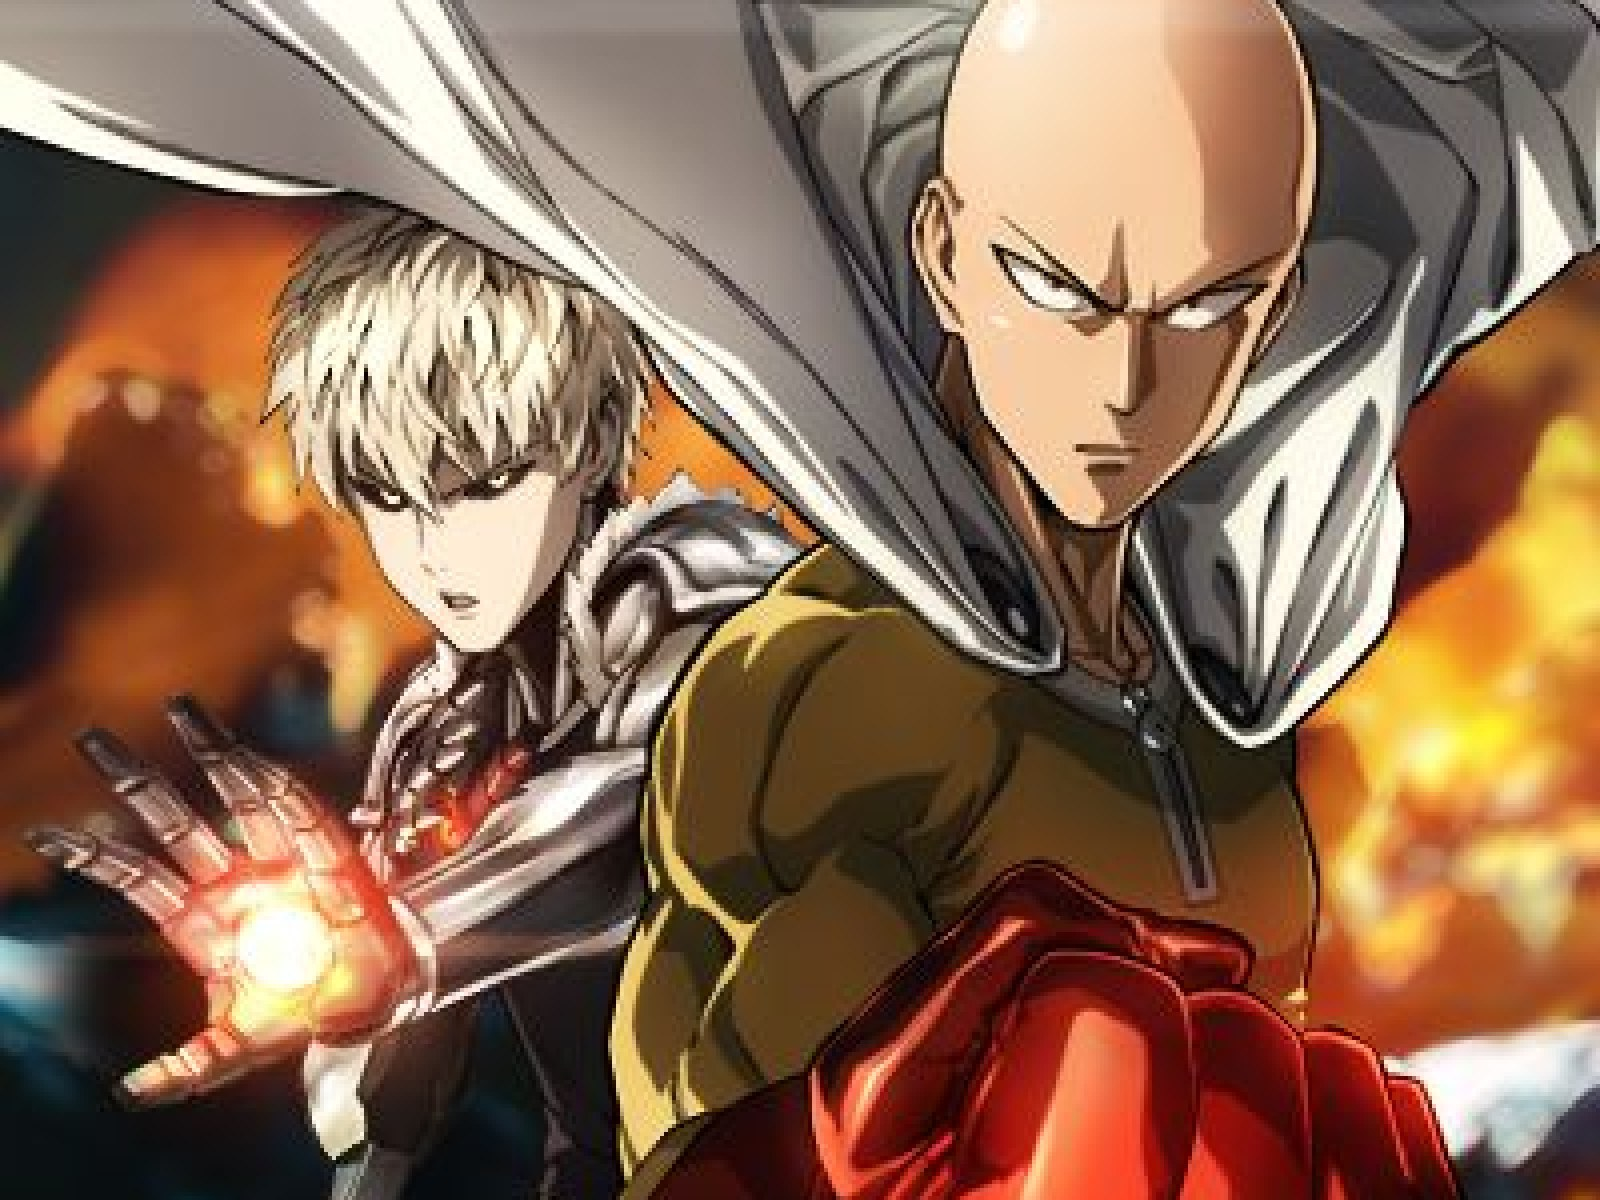 One-Punch Man' Season 2 Rights Acquired by Viz Media